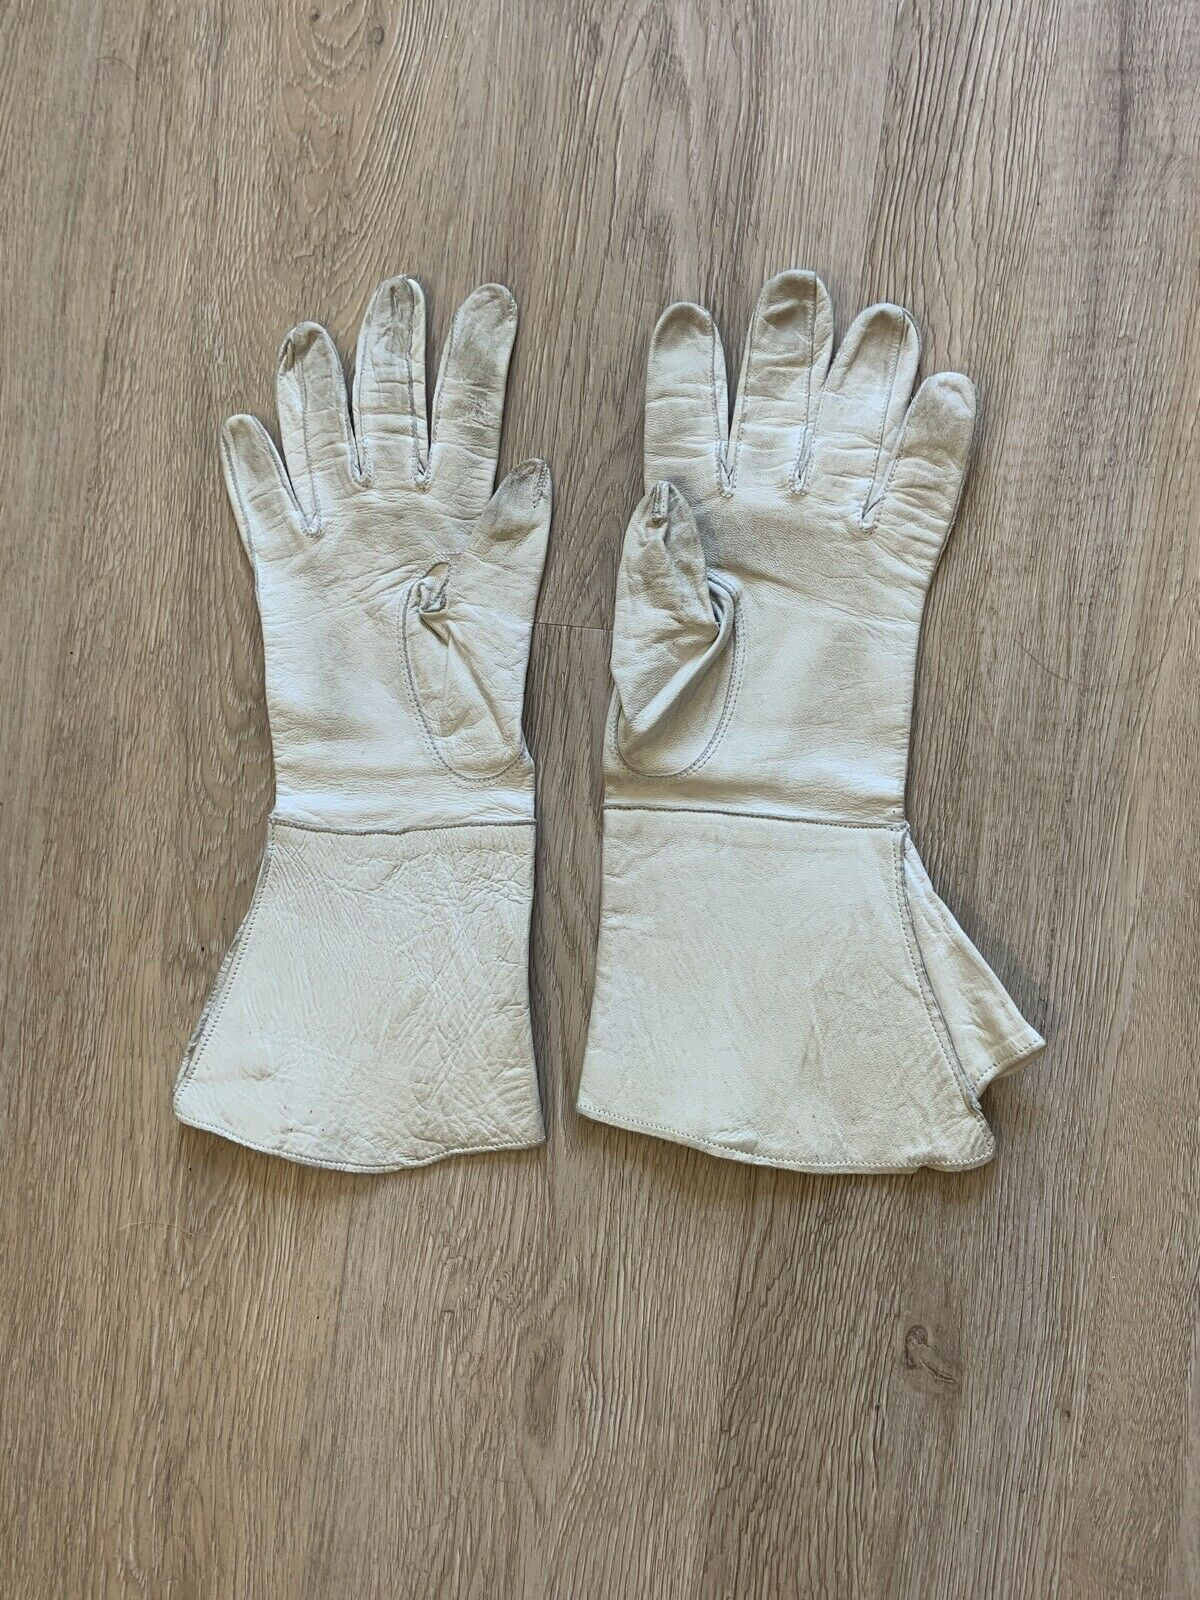 Vintage Early 20th Century French GAUNTLET GLOVES… - image 2